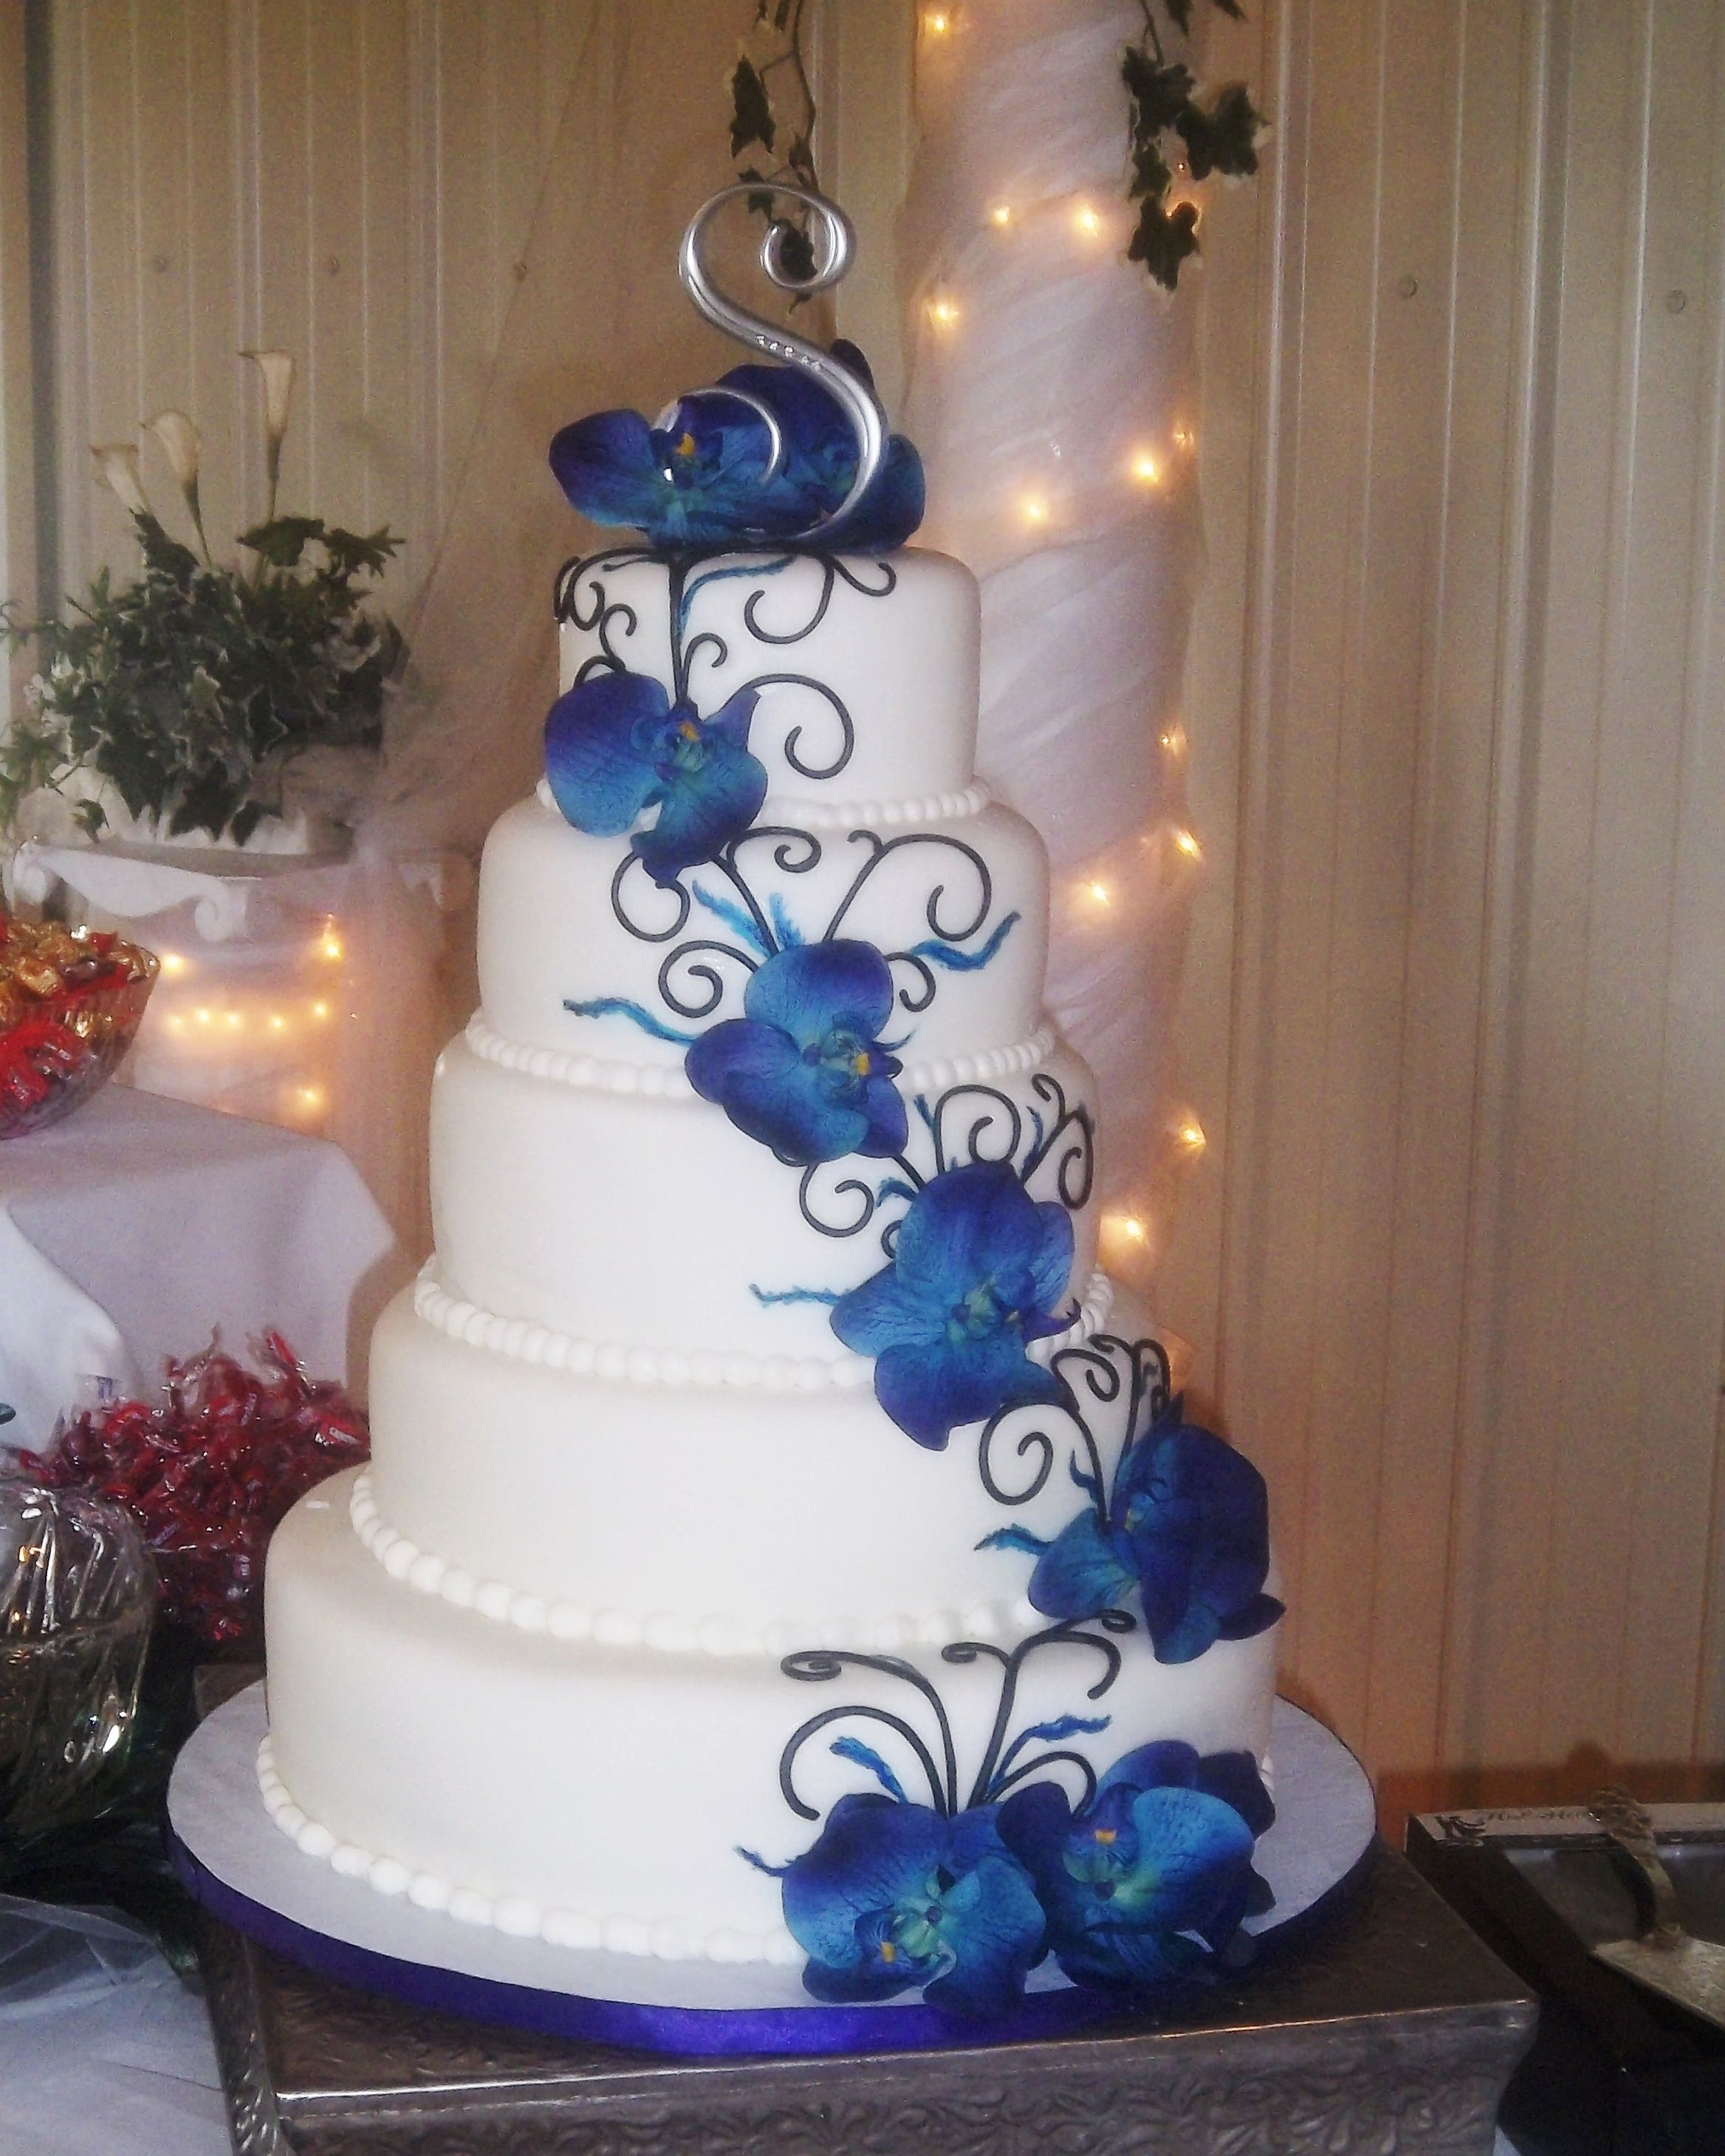 Cake for peacock wedding Her theme was peacock but she